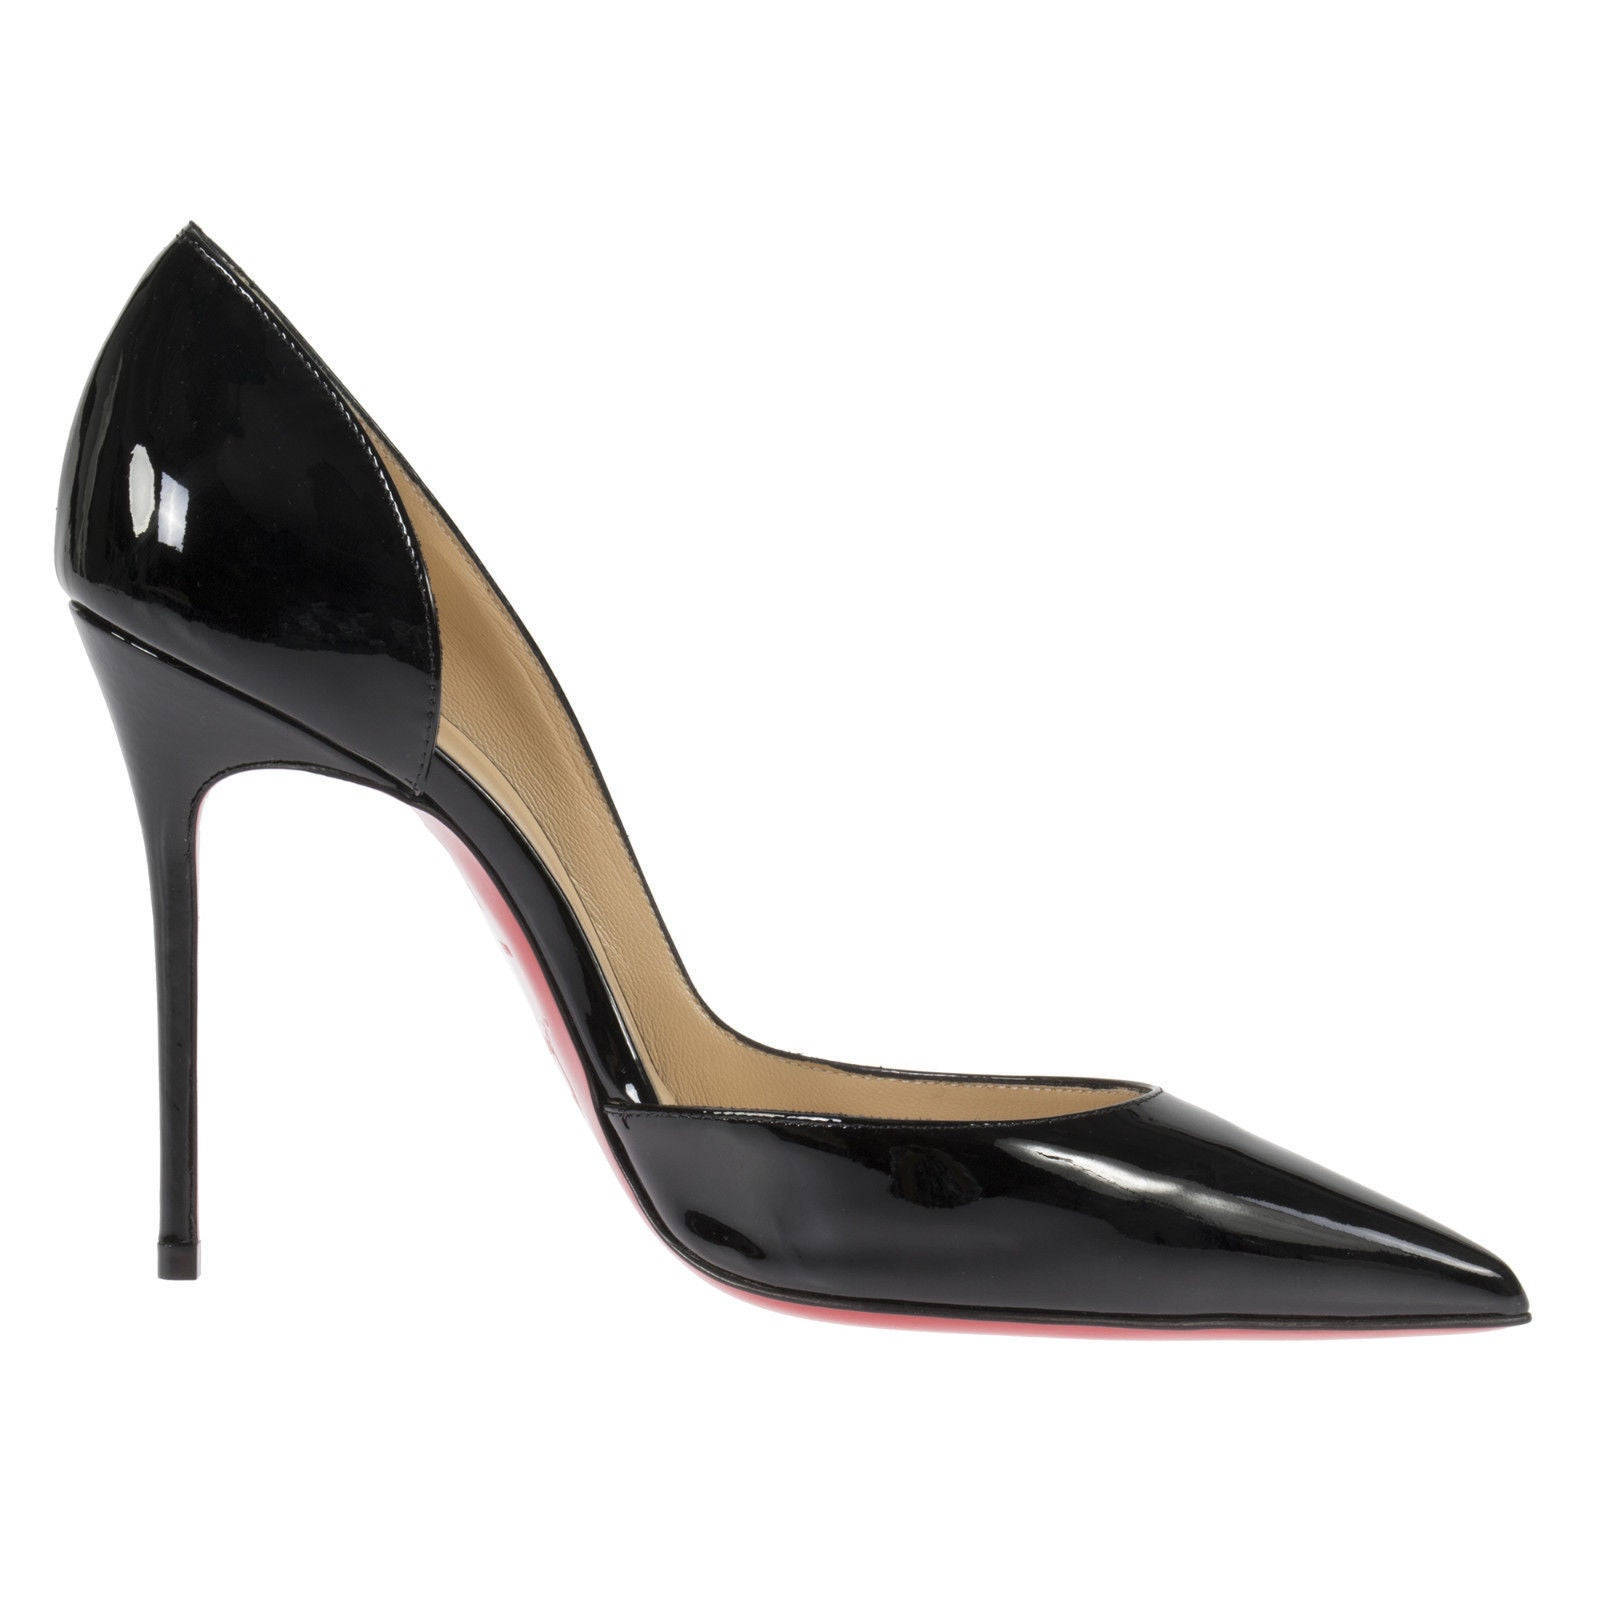 a9162e46ff Shop Christian Louboutin Iriza Black Patent d'Orsay Shoes - Free Shipping  Today - Overstock - 14325896